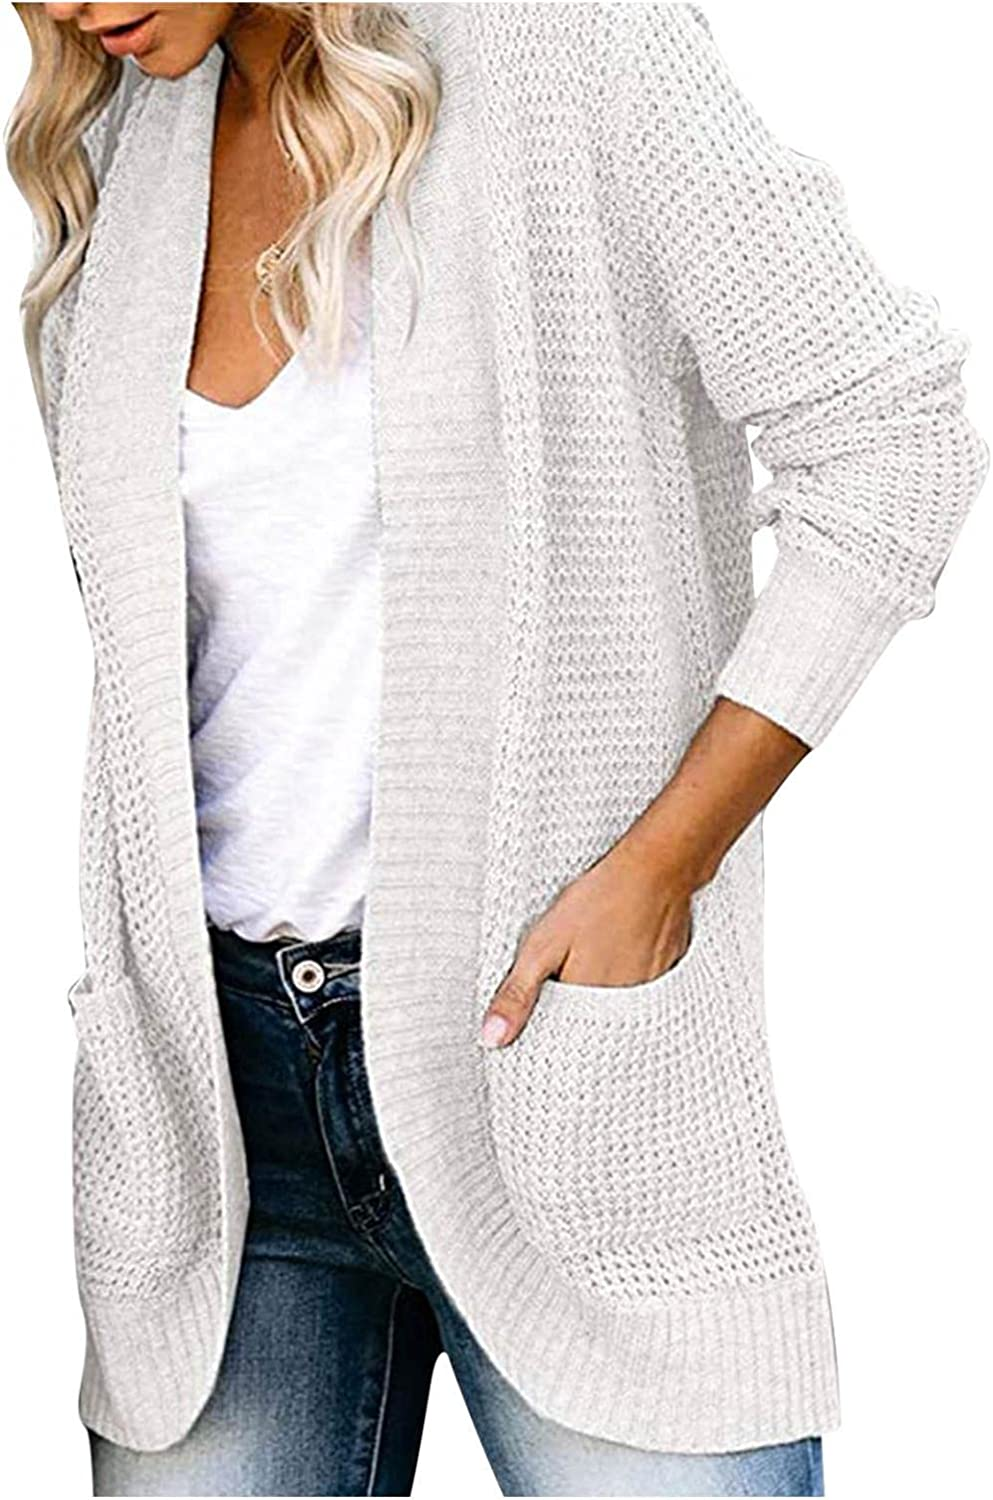 Cardigan Sweaters for Women,Womens Long Sleeve Open Front Cardigans Chunky Knit Draped Sweaters Outwear with Pockets